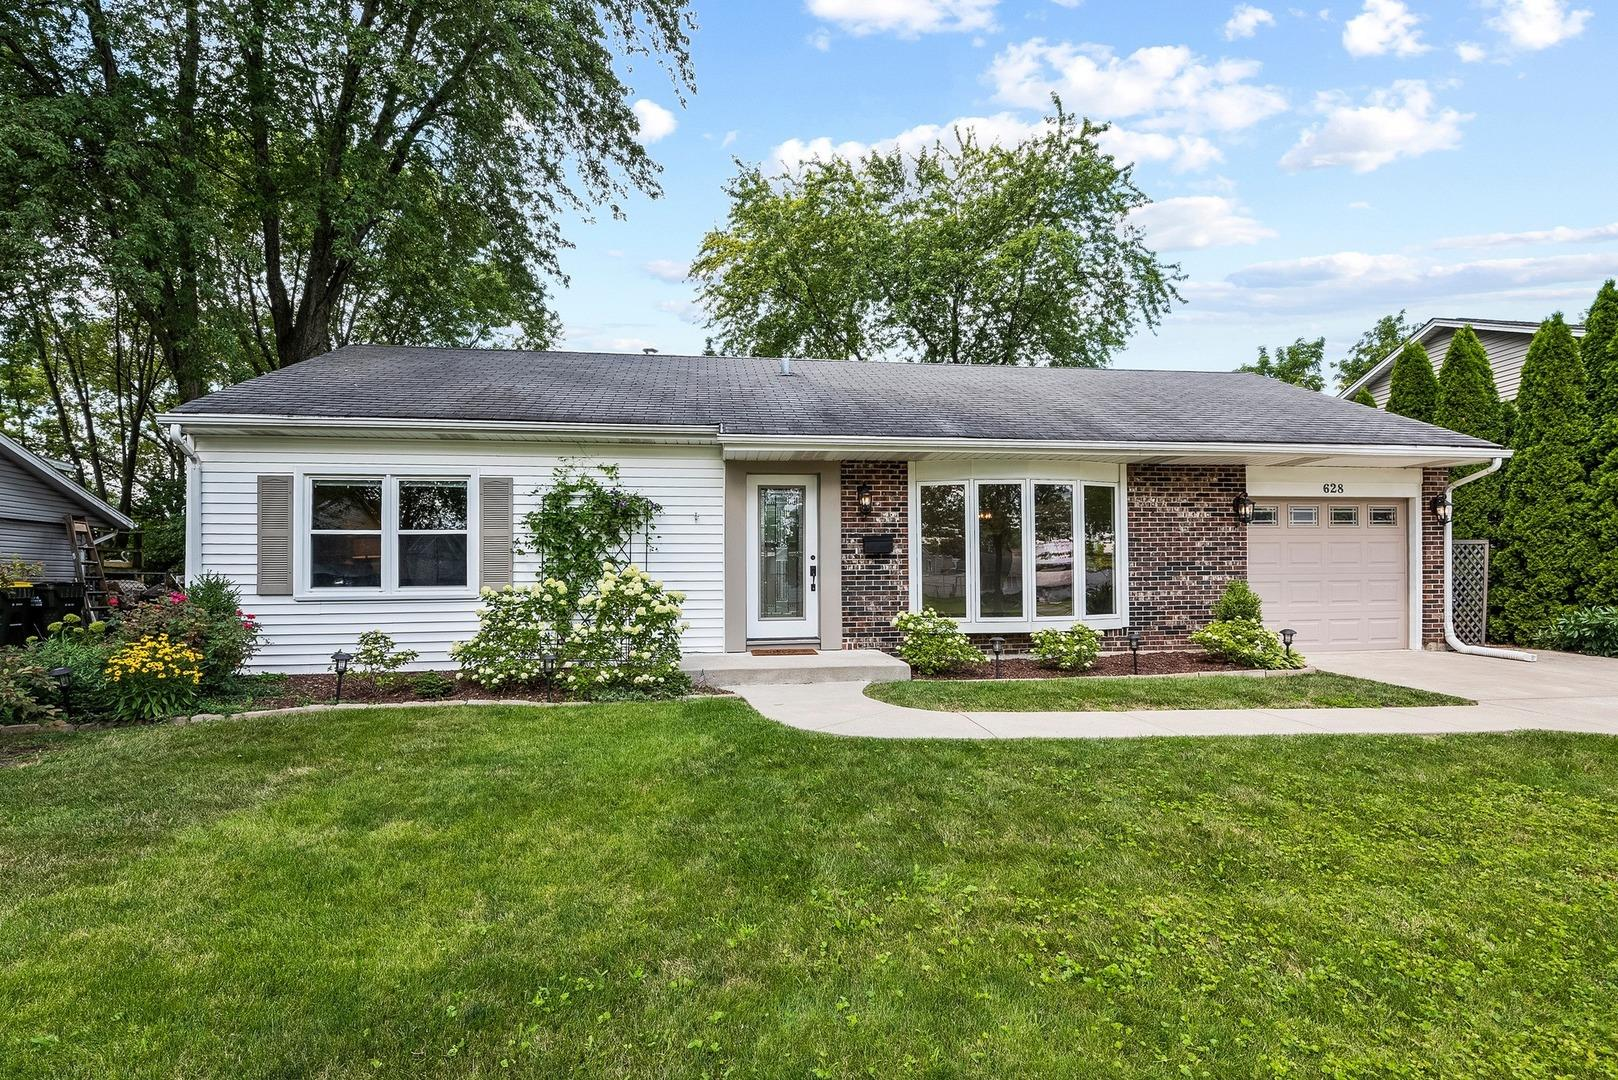 628 Springfield Drive, Roselle, IL 60172 - #: 10812087